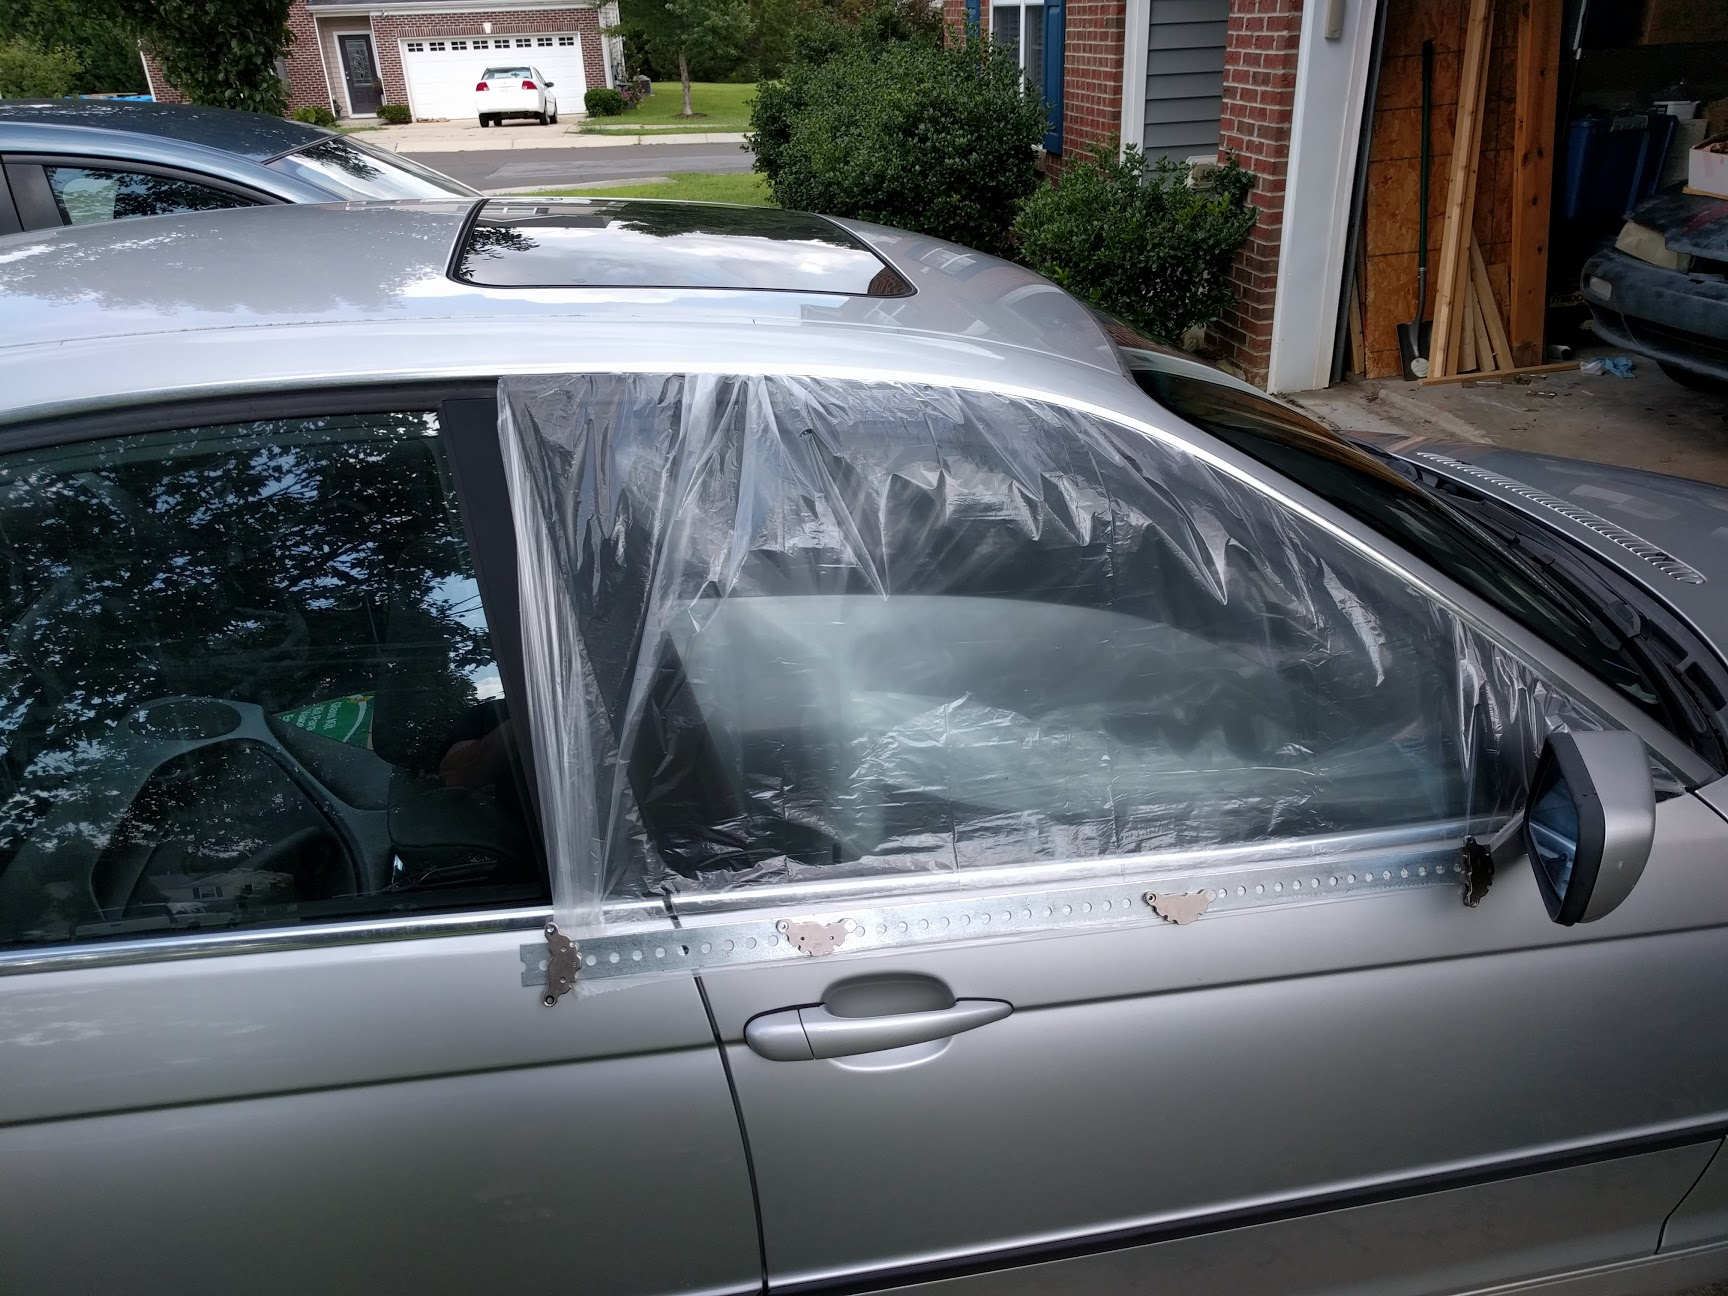 Wrar's Garage: Stupid Previous Owner - The Something Awful